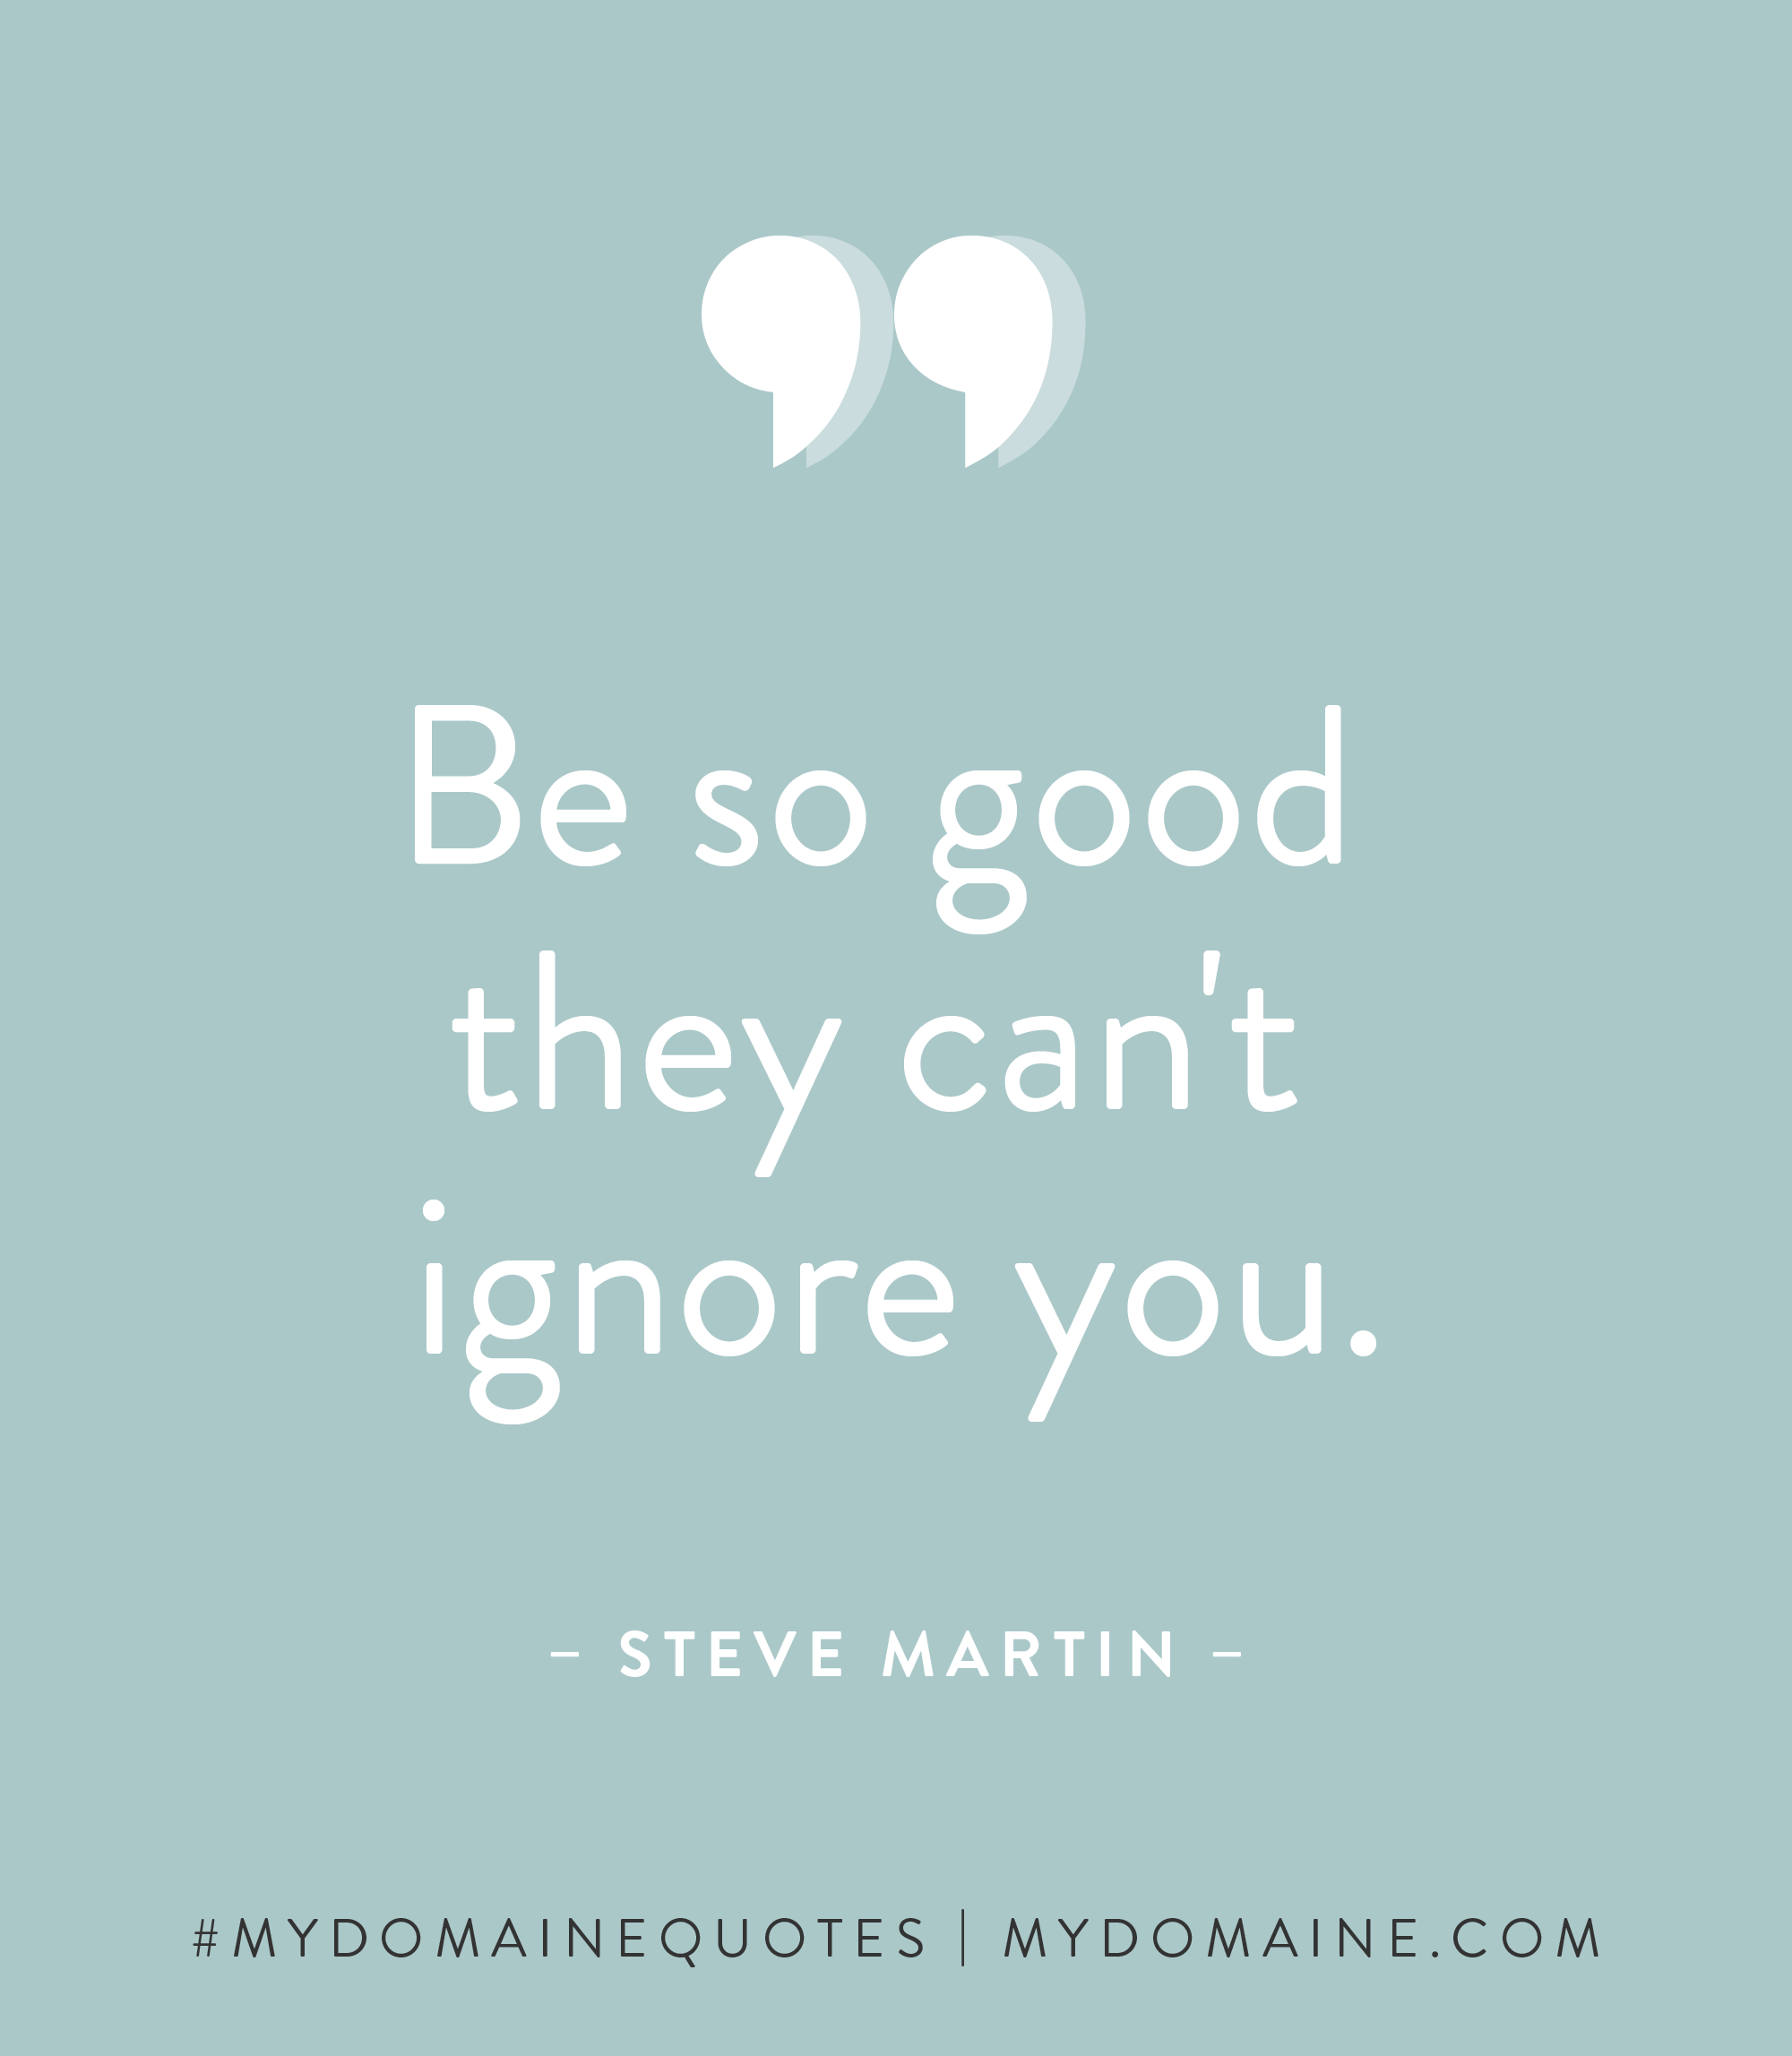 social-quote-steve-martin-03.png